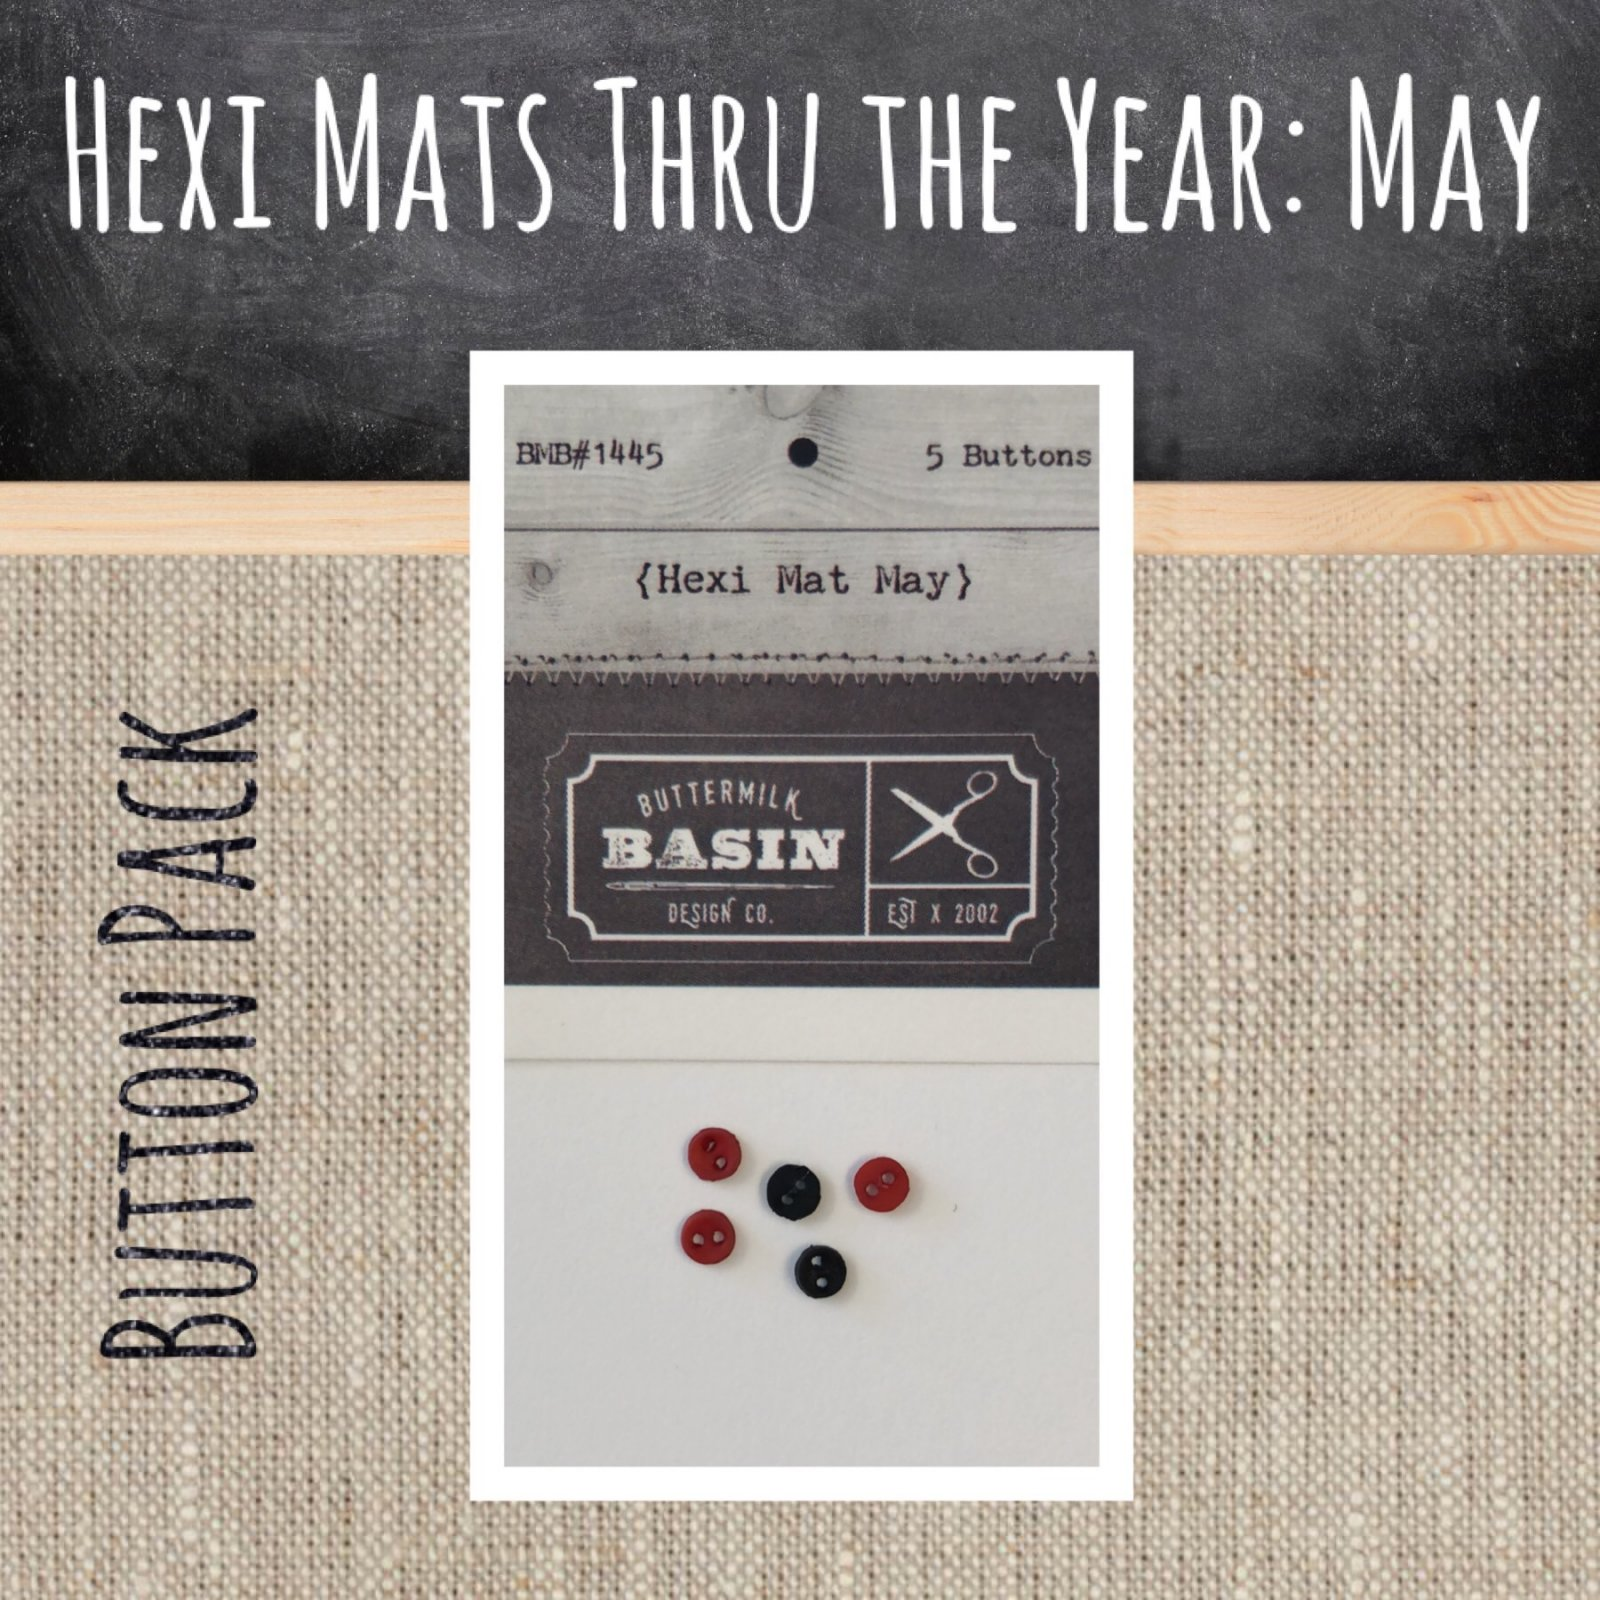 Hexi Mats thru the Year * May BUTTON pack